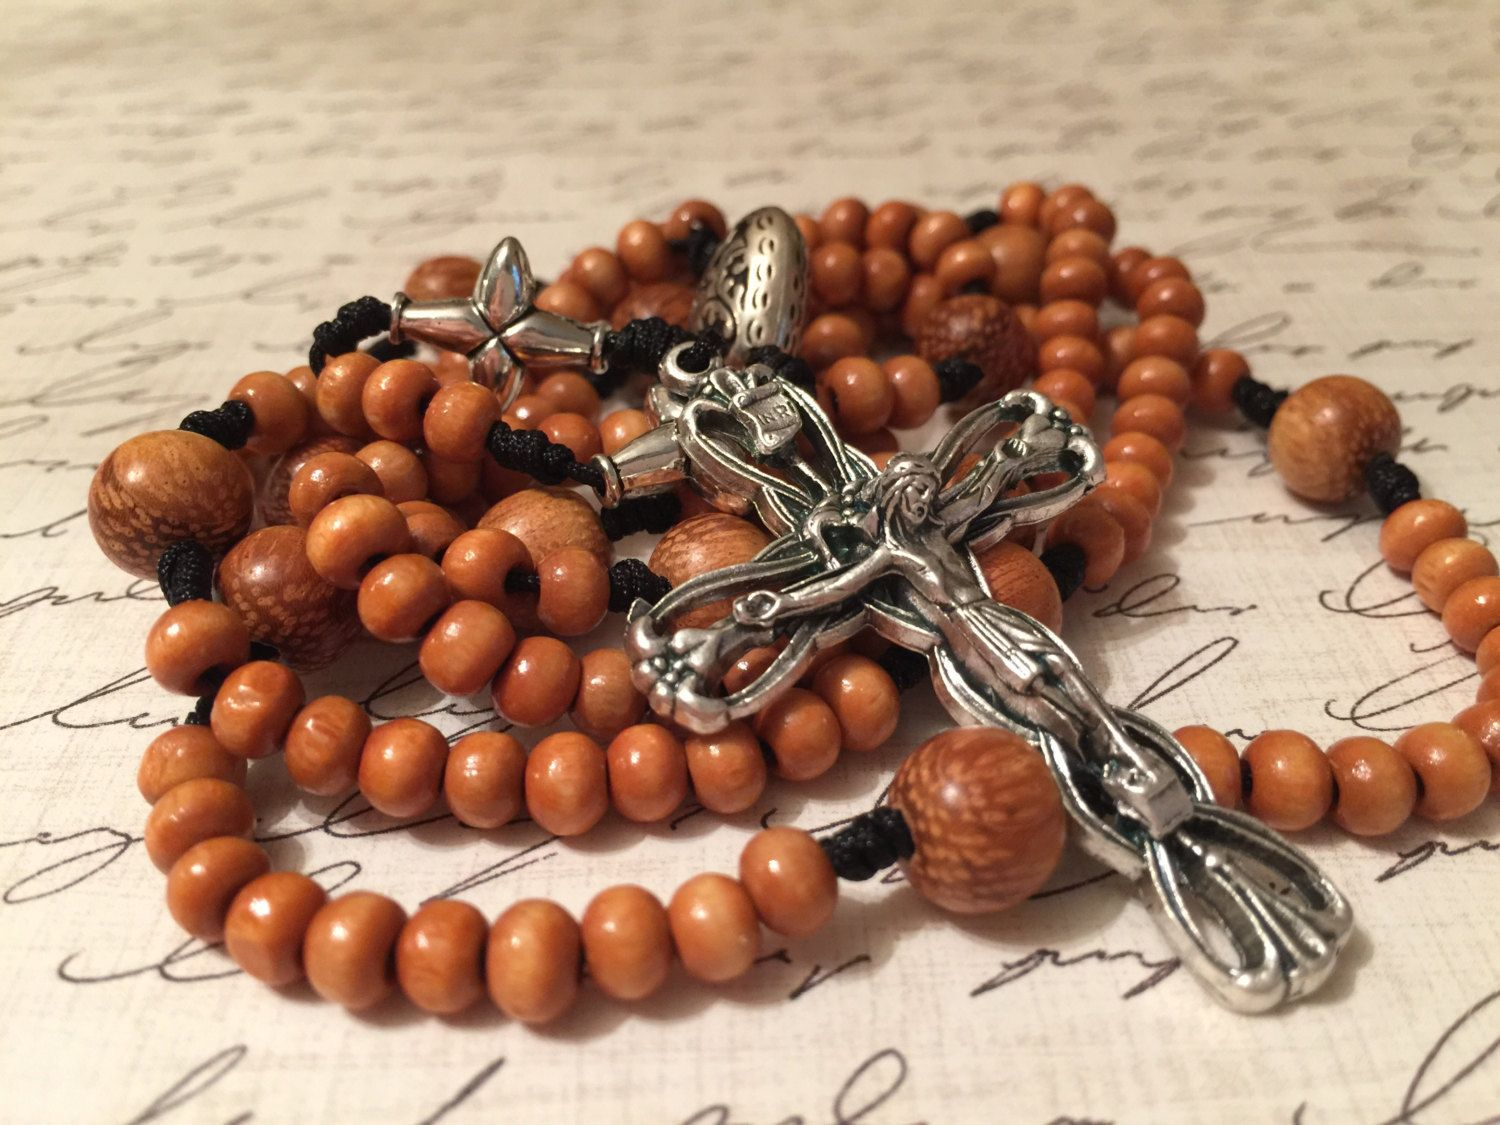 Fifteen Decade Wood Beads Cord Rosary by RosaryCastle on